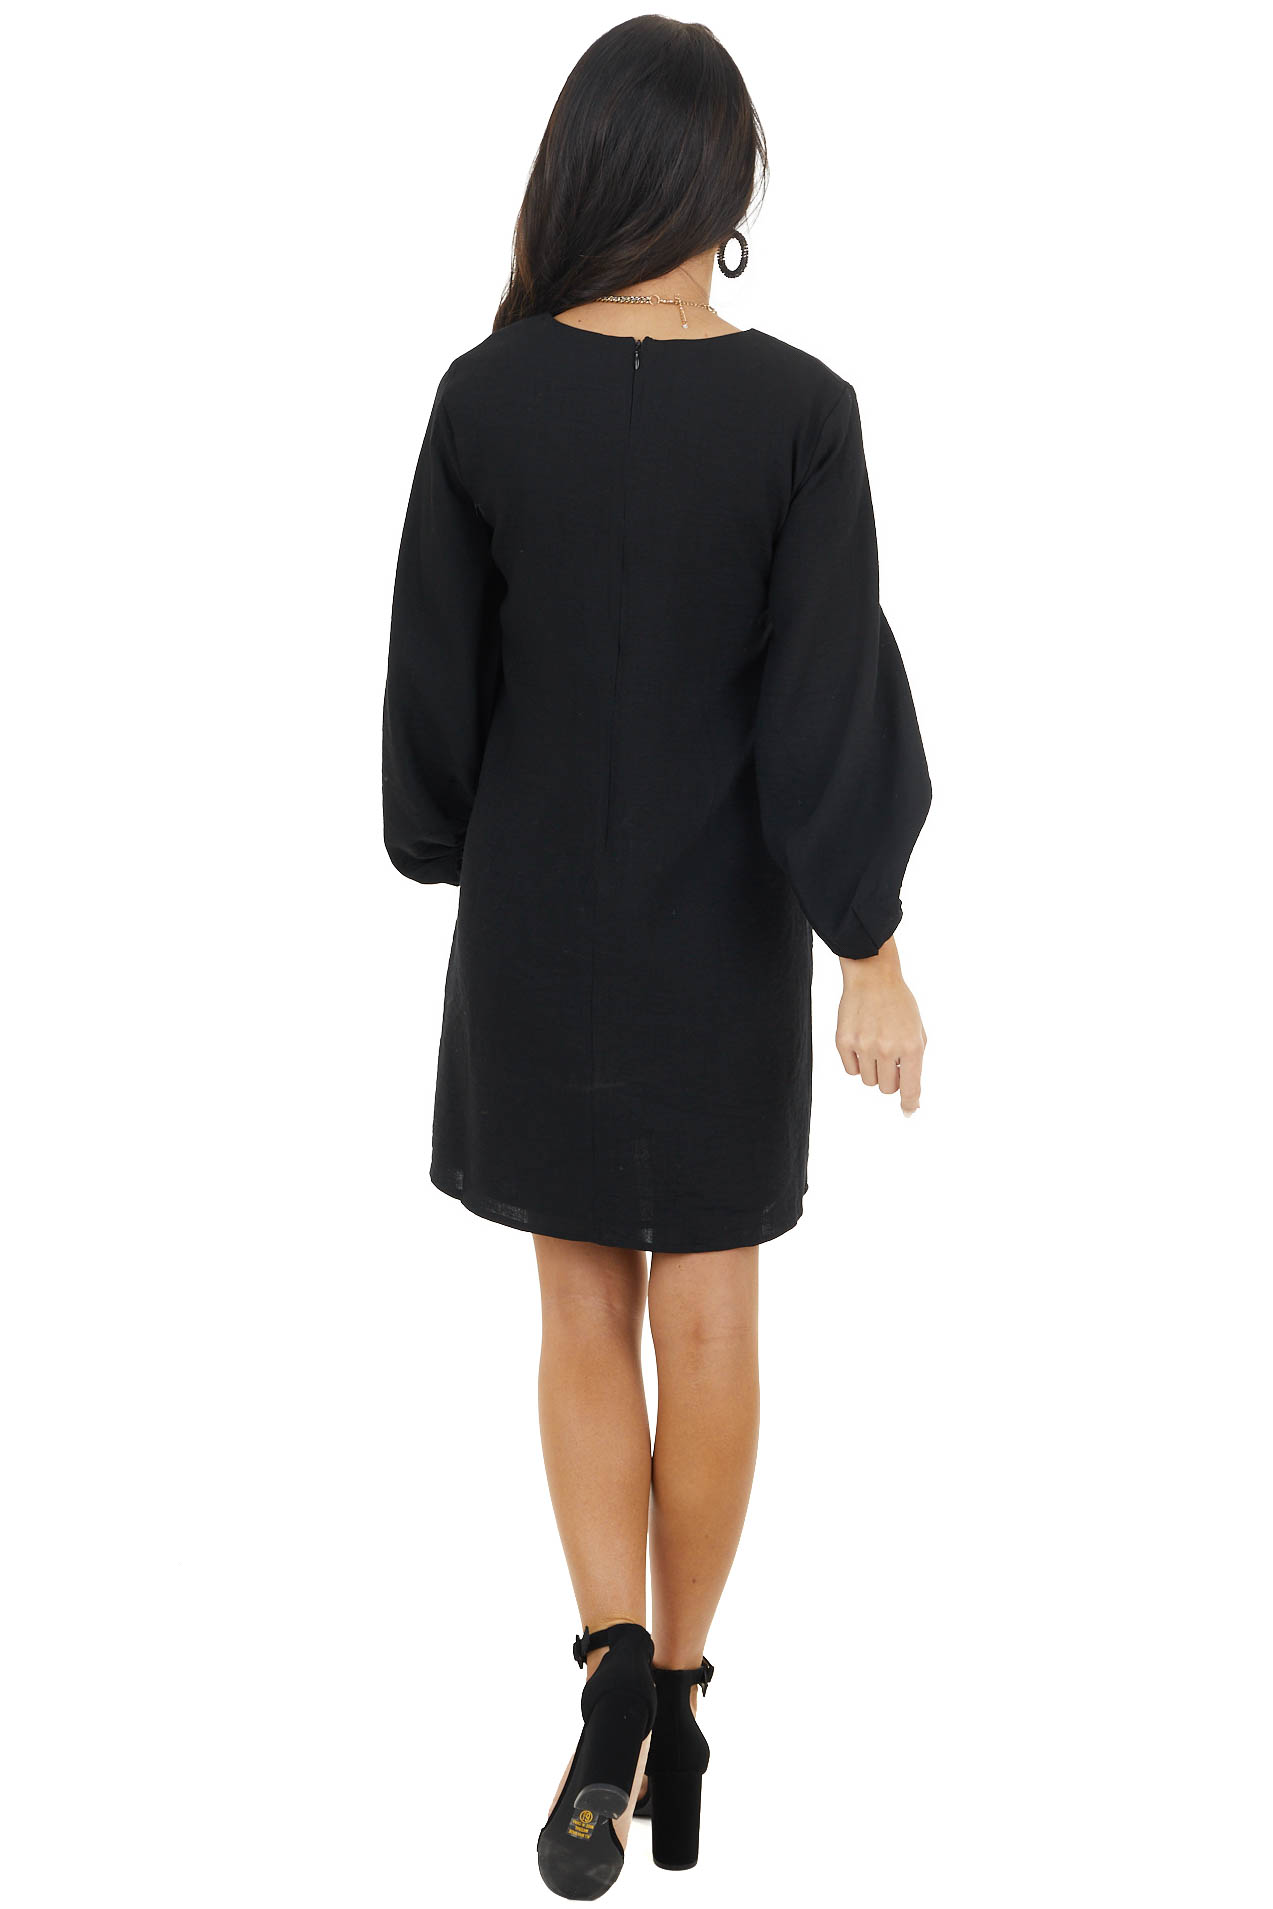 Black Short V Neck Shift Dress with Long Bubble Sleeves